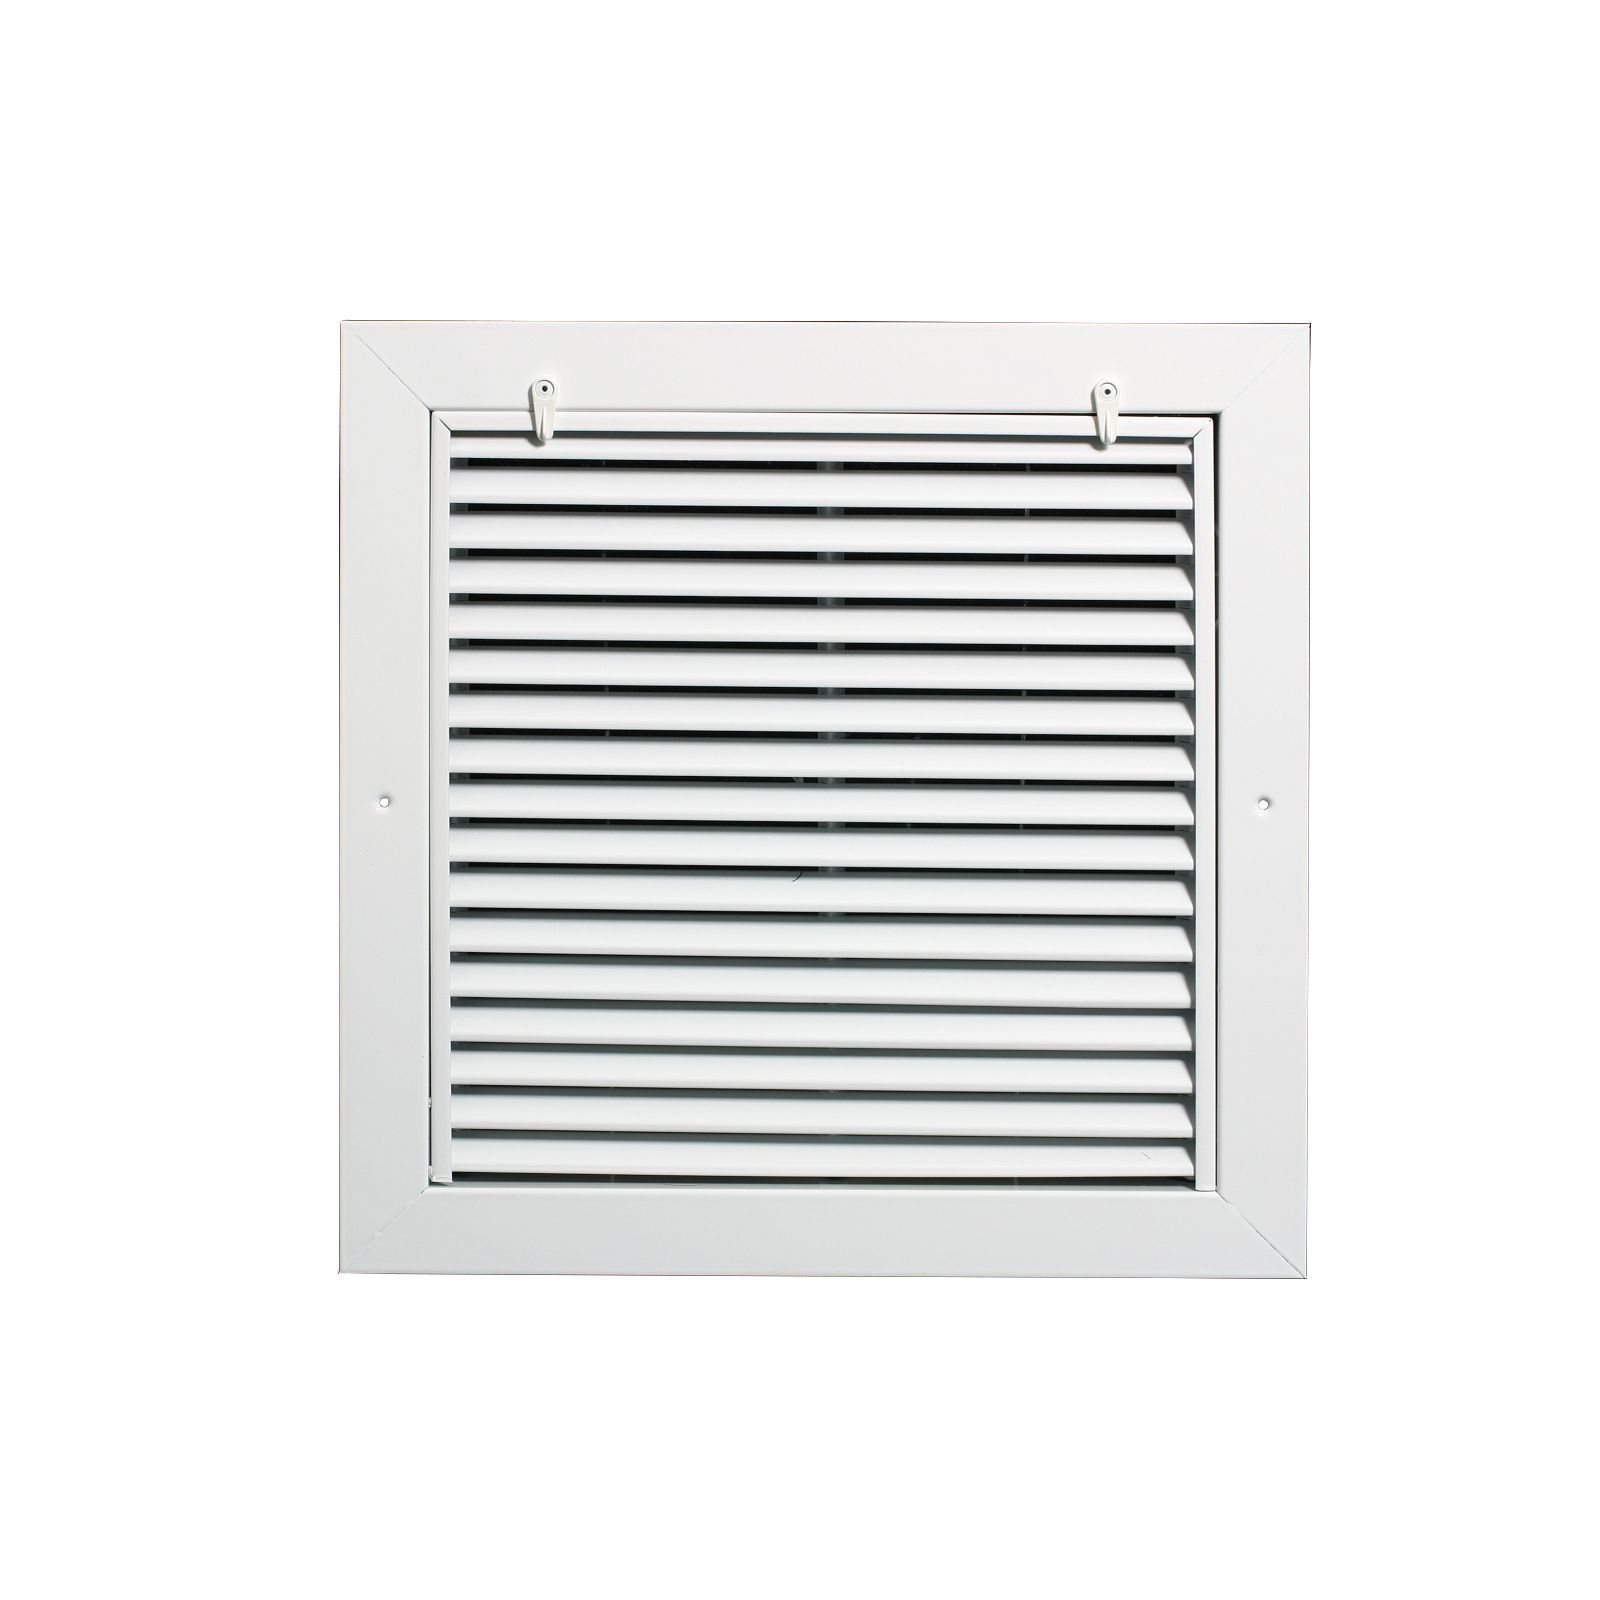 "Grille Tech RAFGS1414 - Aluminum Return Air Filter Grille, Grille Size 14"" X 14"" White"